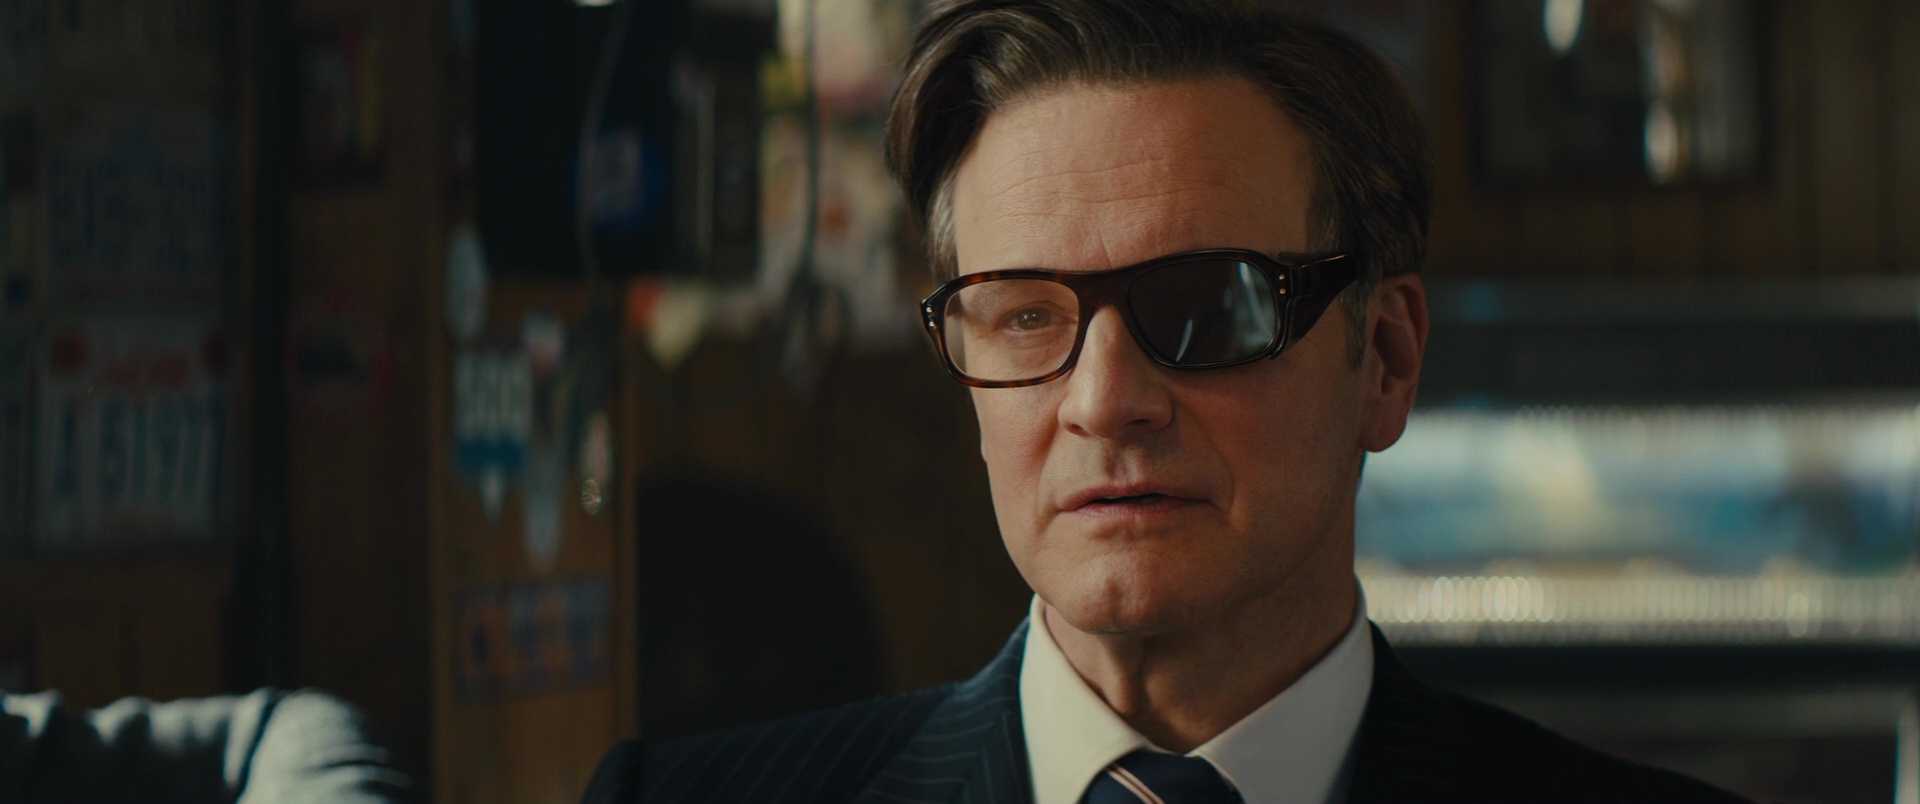 df85730cc81 Cutler And Gross Square-Frame Tortoiseshell Acetate Optical Glasses Worn by  Colin Firth in Kingsman